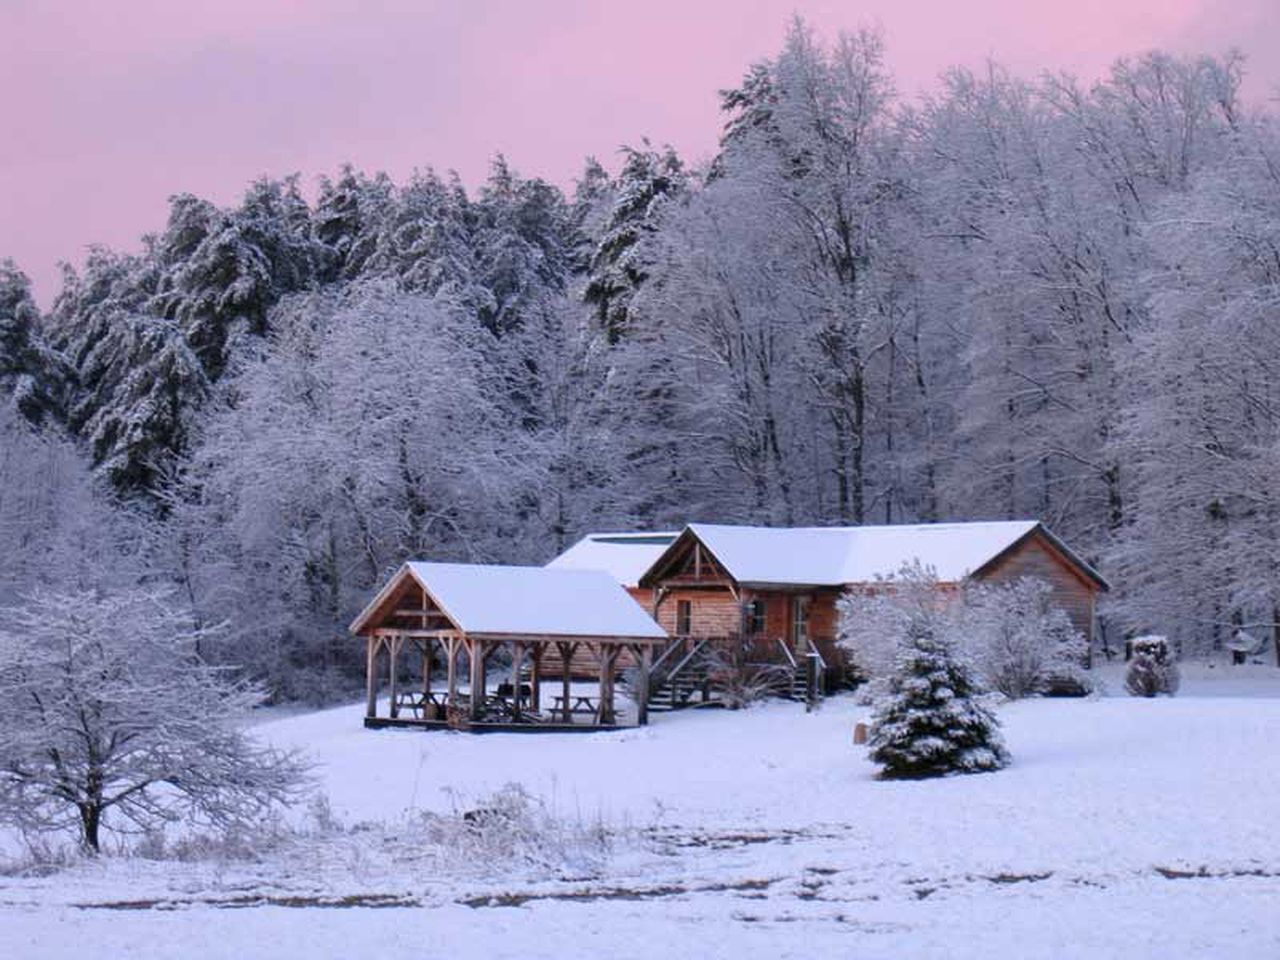 Private cabin in open field covered in snow in Upstate New York.